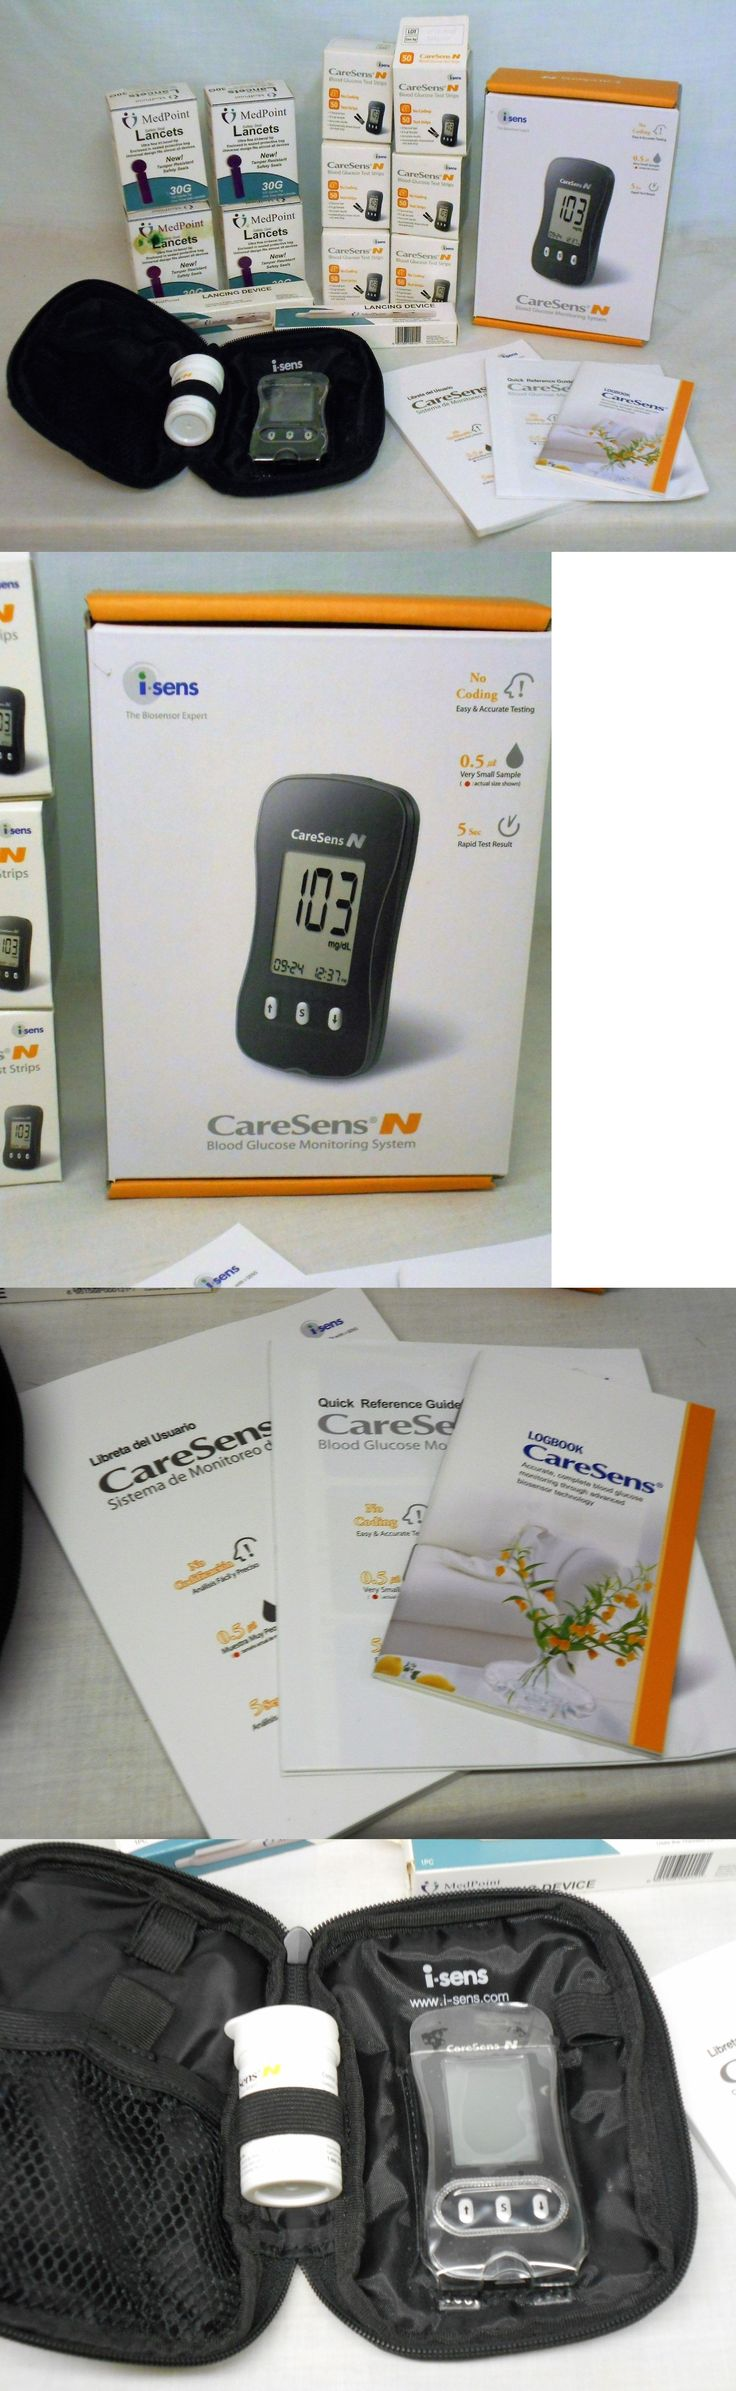 Glucose Monitors: Caresens N Blood Glucose Monitoring System Lancing Device,Test Strips, Lancets BUY IT NOW ONLY: $160.0